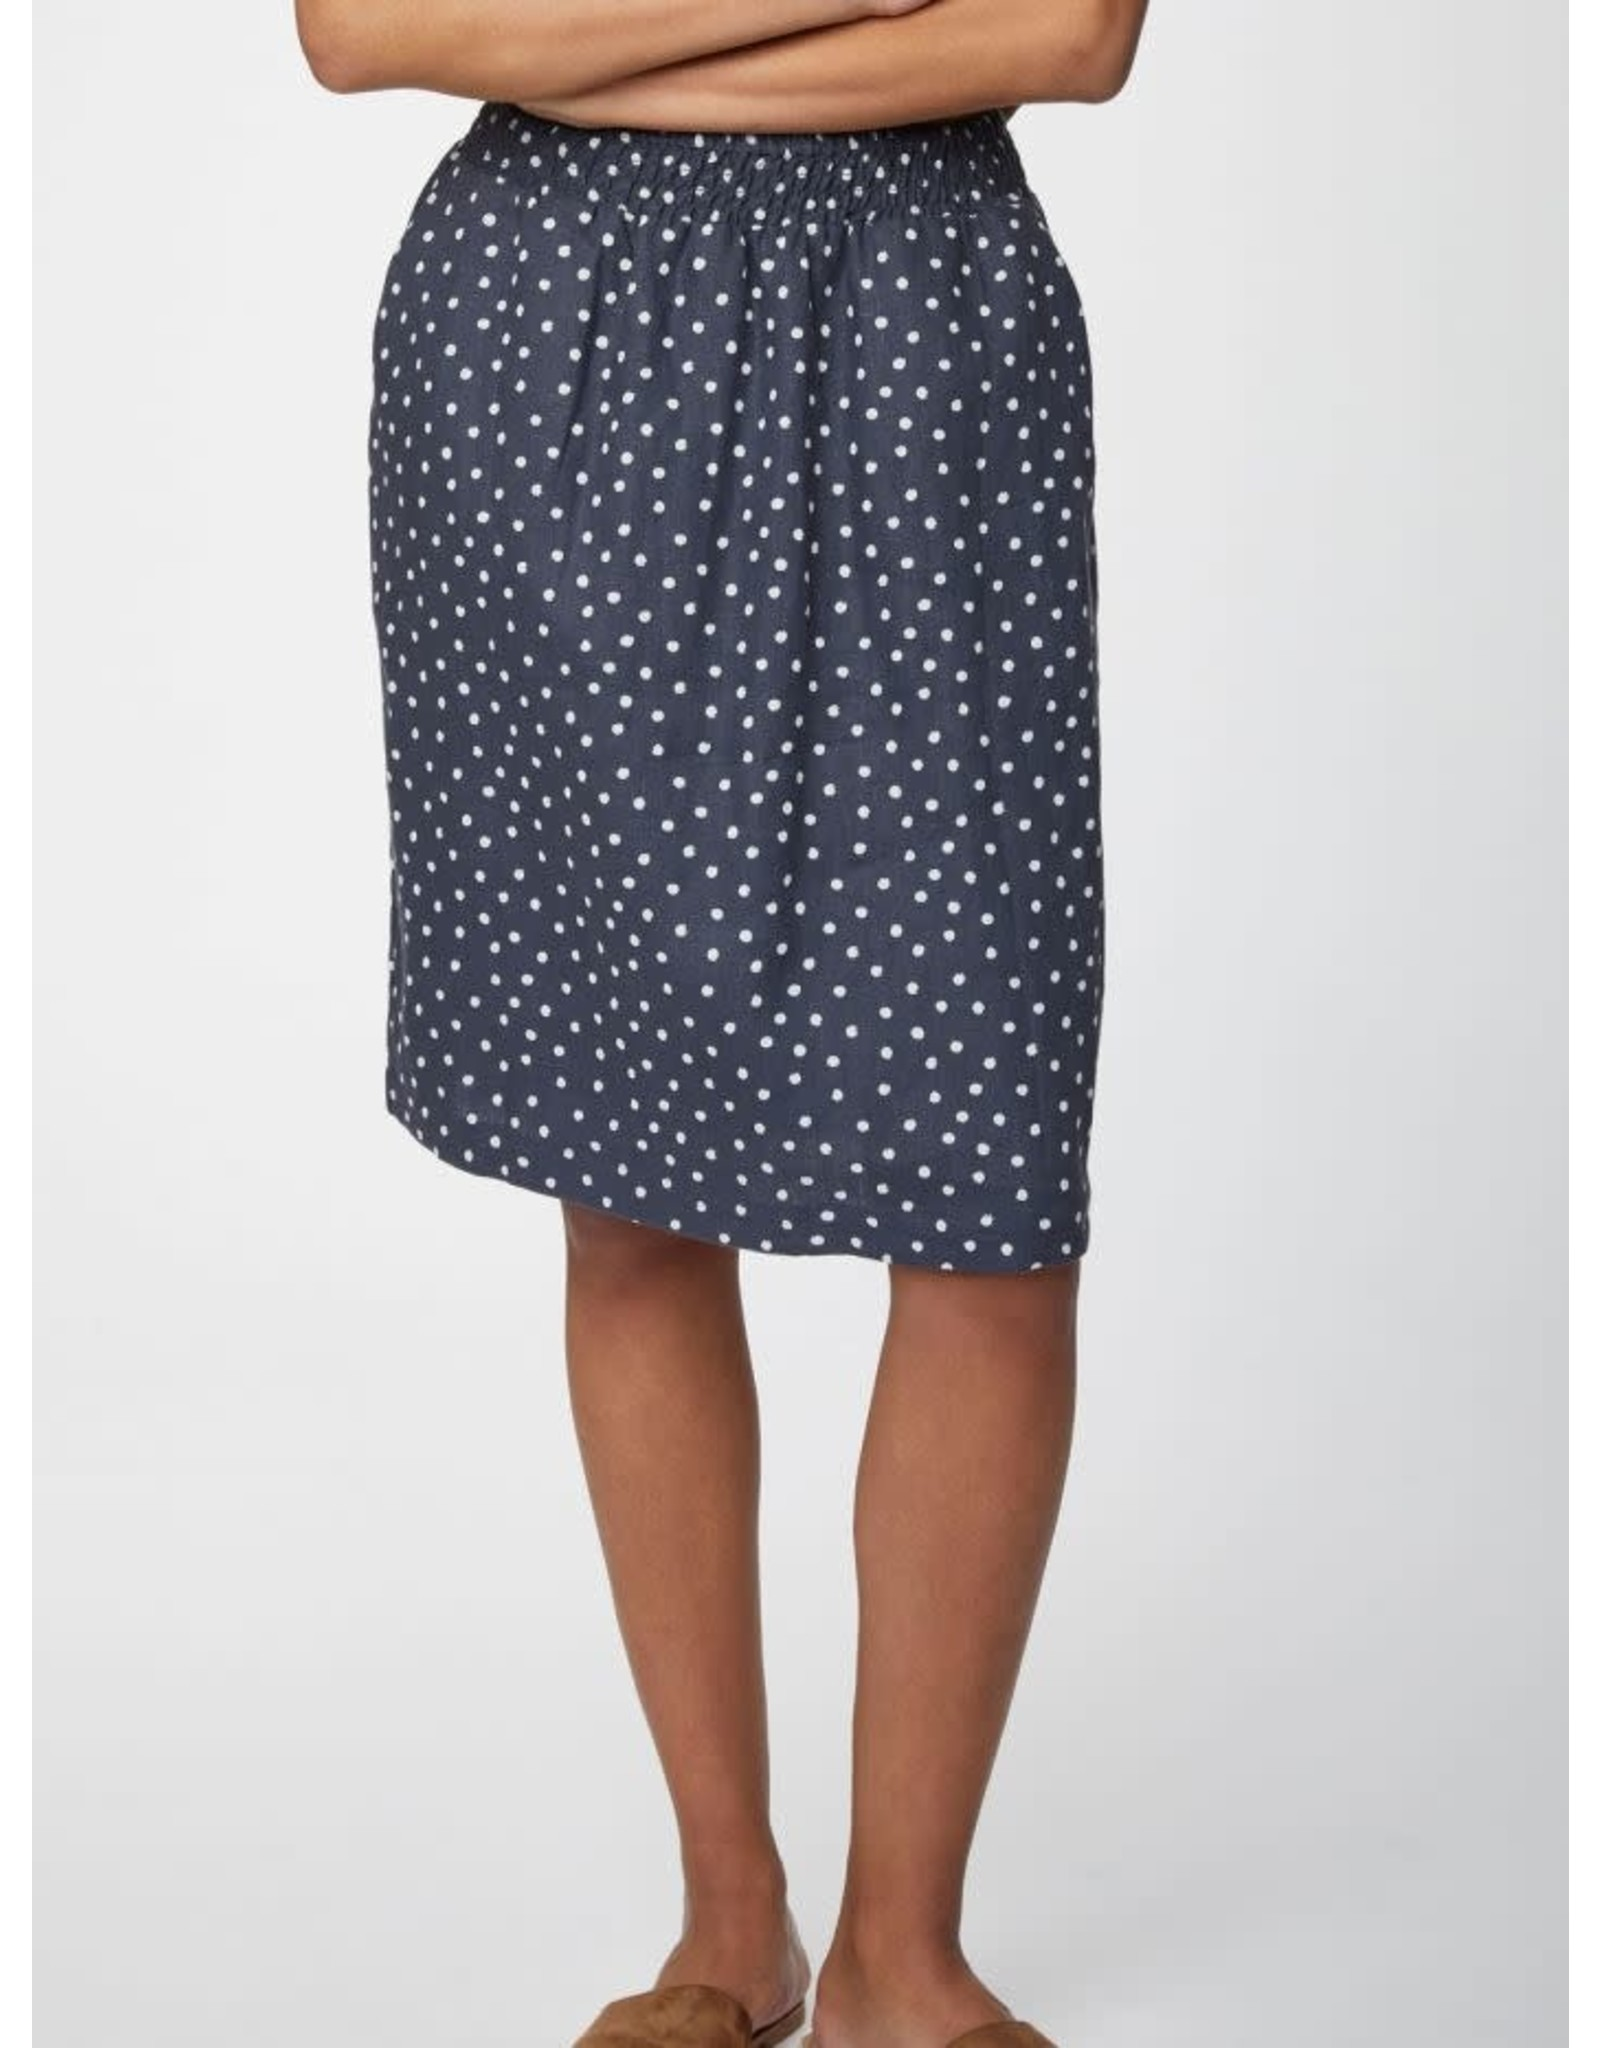 Thought Thought Miriam Skirt